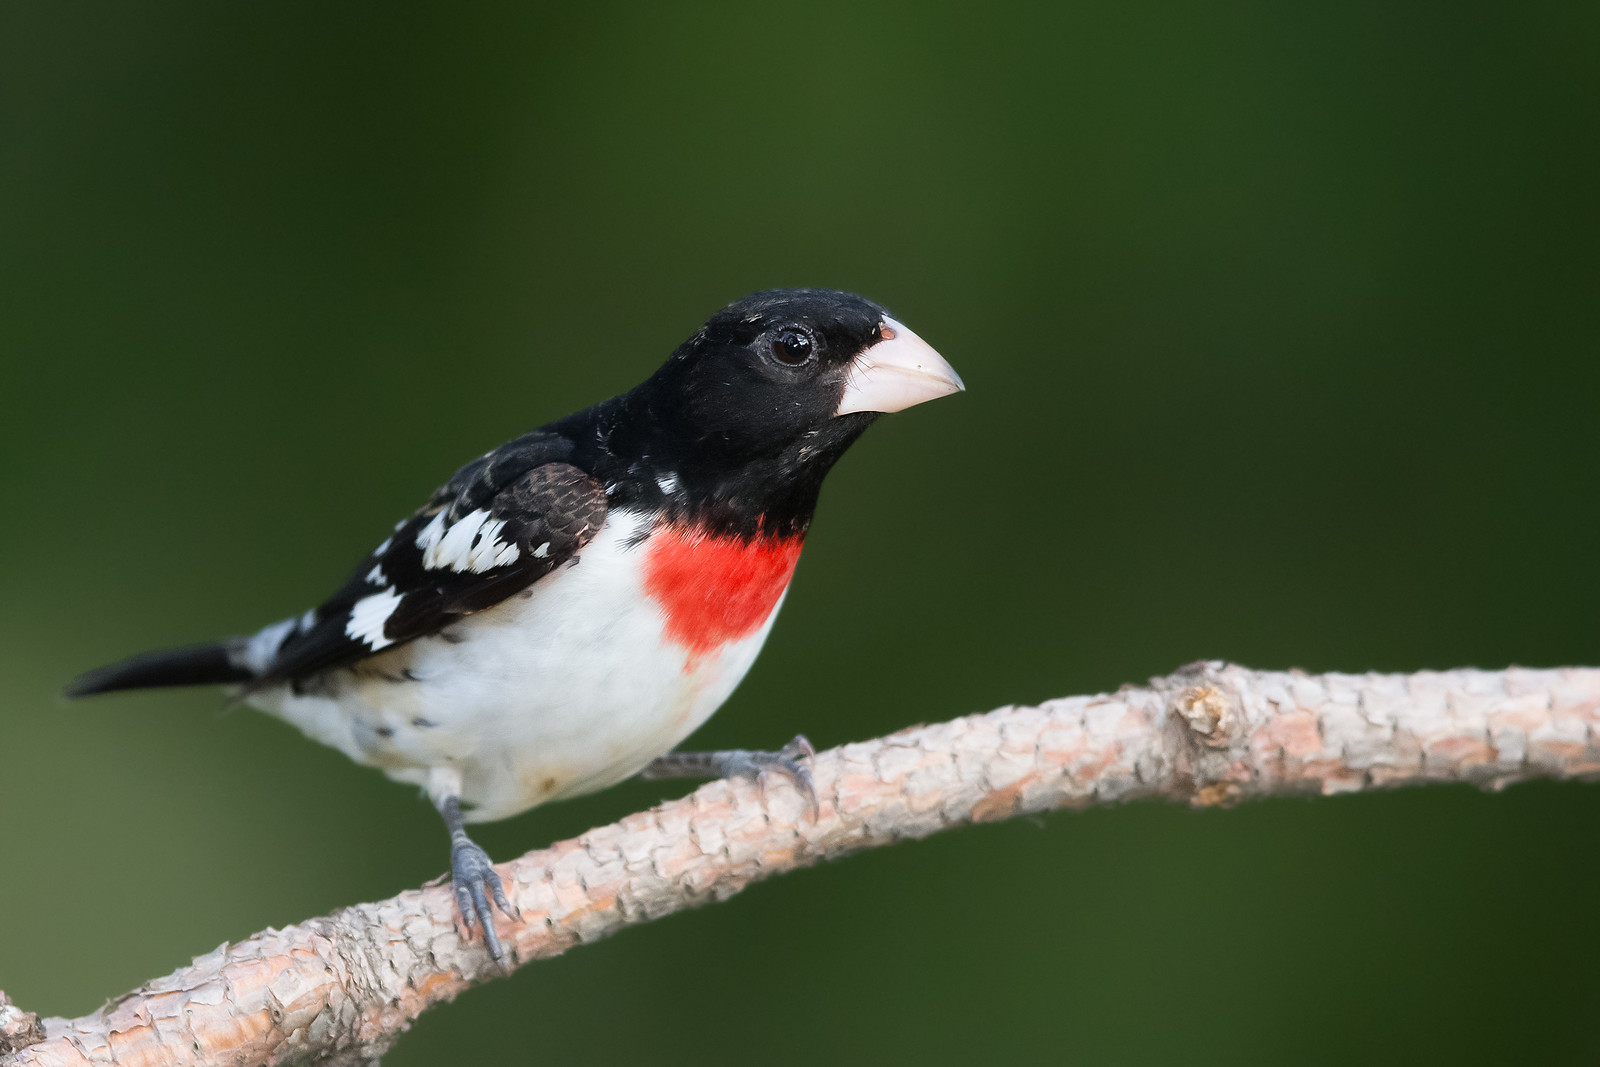 Rose-breasted Grosbeak - Male - Grayling, MI, USA